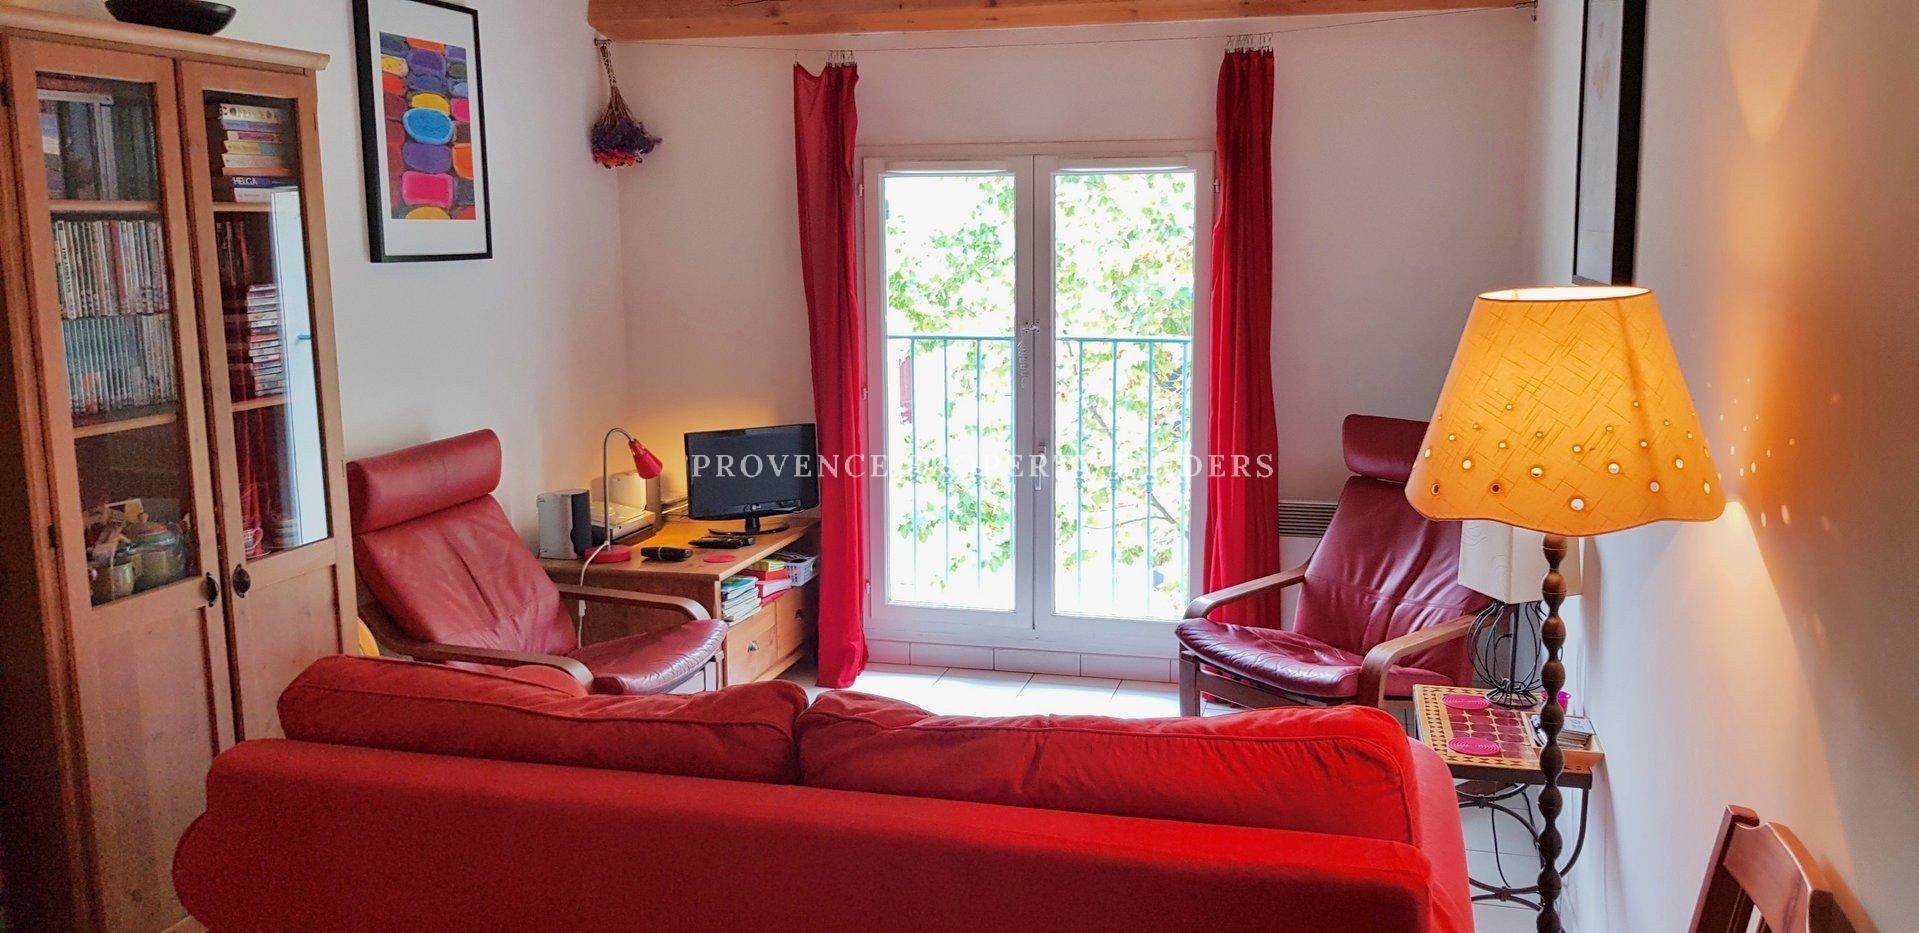 Apartment Duplex 35m2, fully furnished for sale in lovely Lorgues.